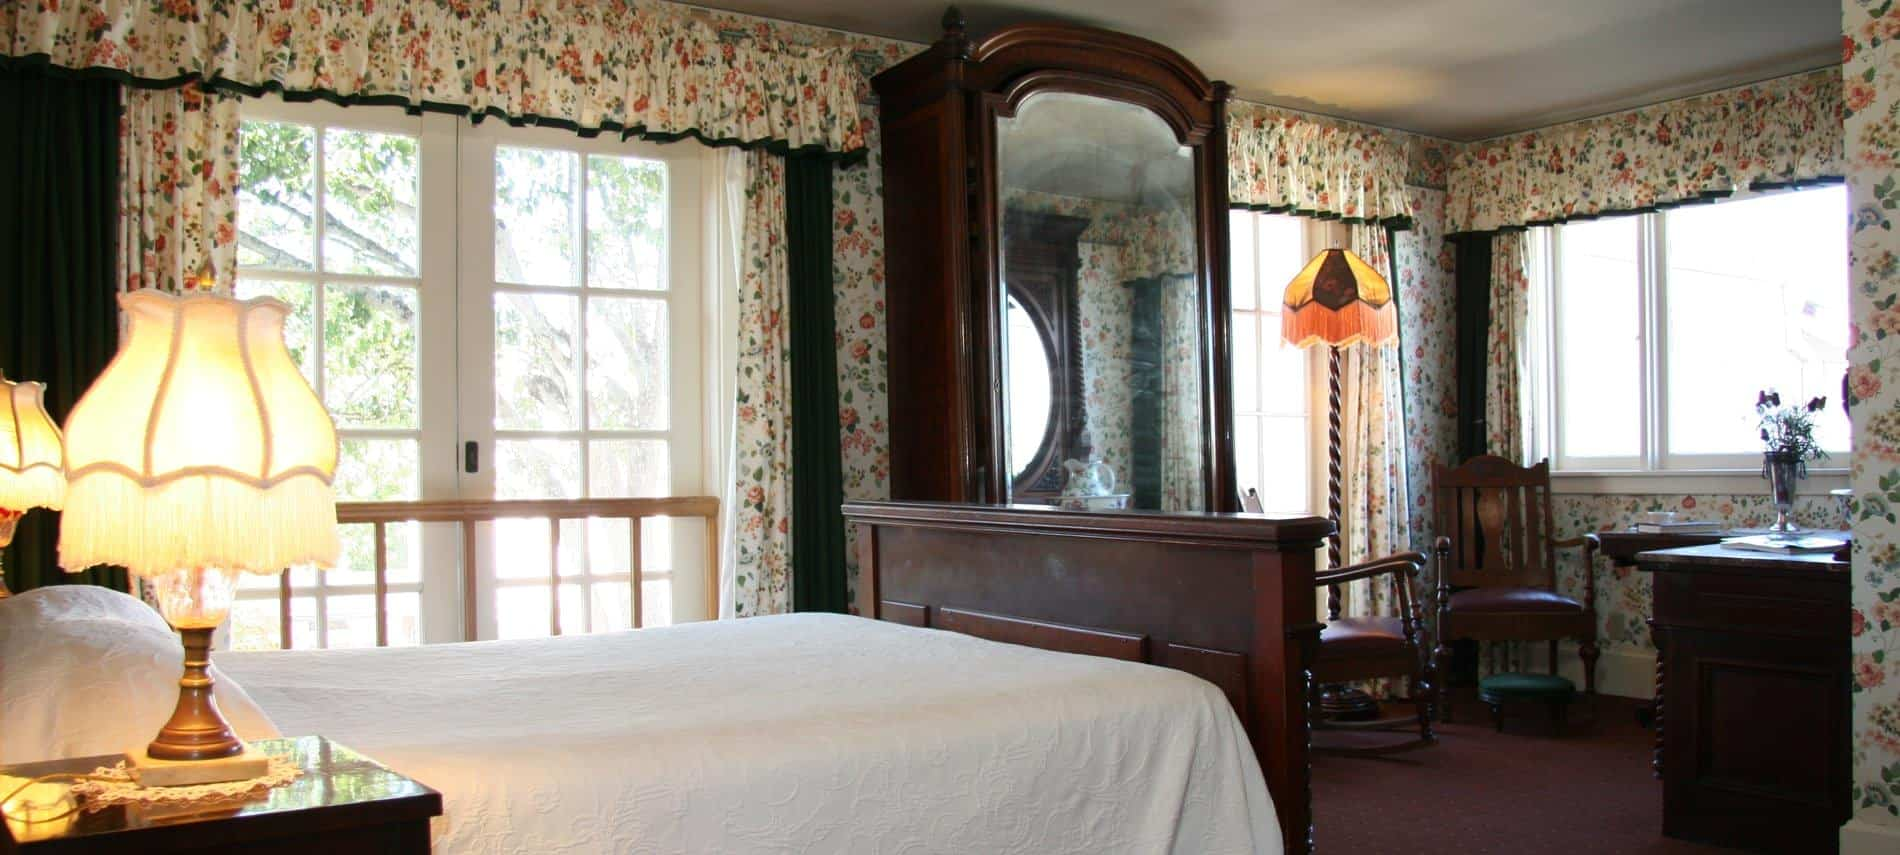 Spacious Fireside guest room with floral papered walls and curtains, several windows, tall armoire with mirror and wood bed